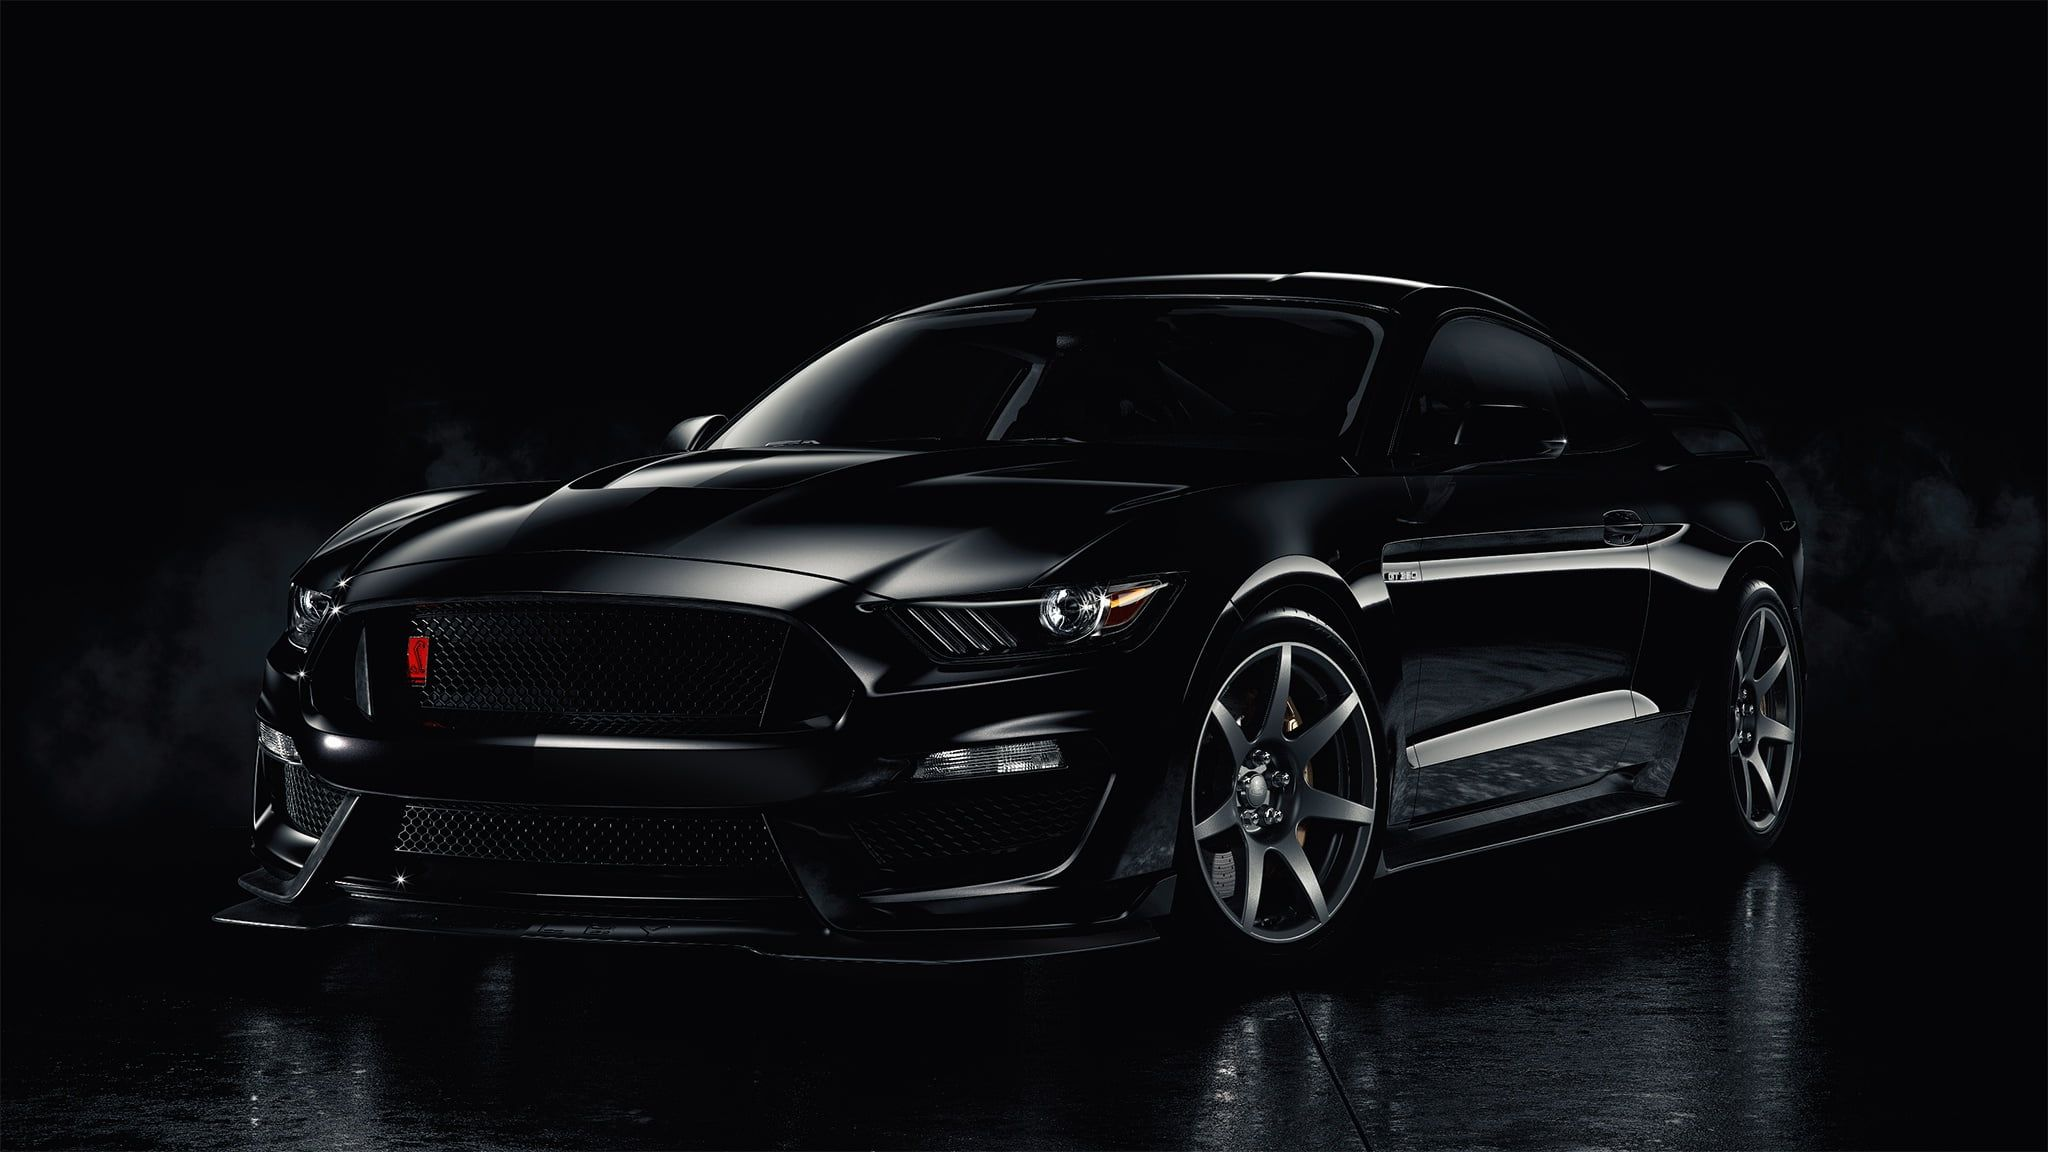 Black Car Mustang Ford Black Smoke Backgraund 1080p Wallpaper Hdwallpaper Desktop Black Car Mustang Ford Mustang Shelby Gt500